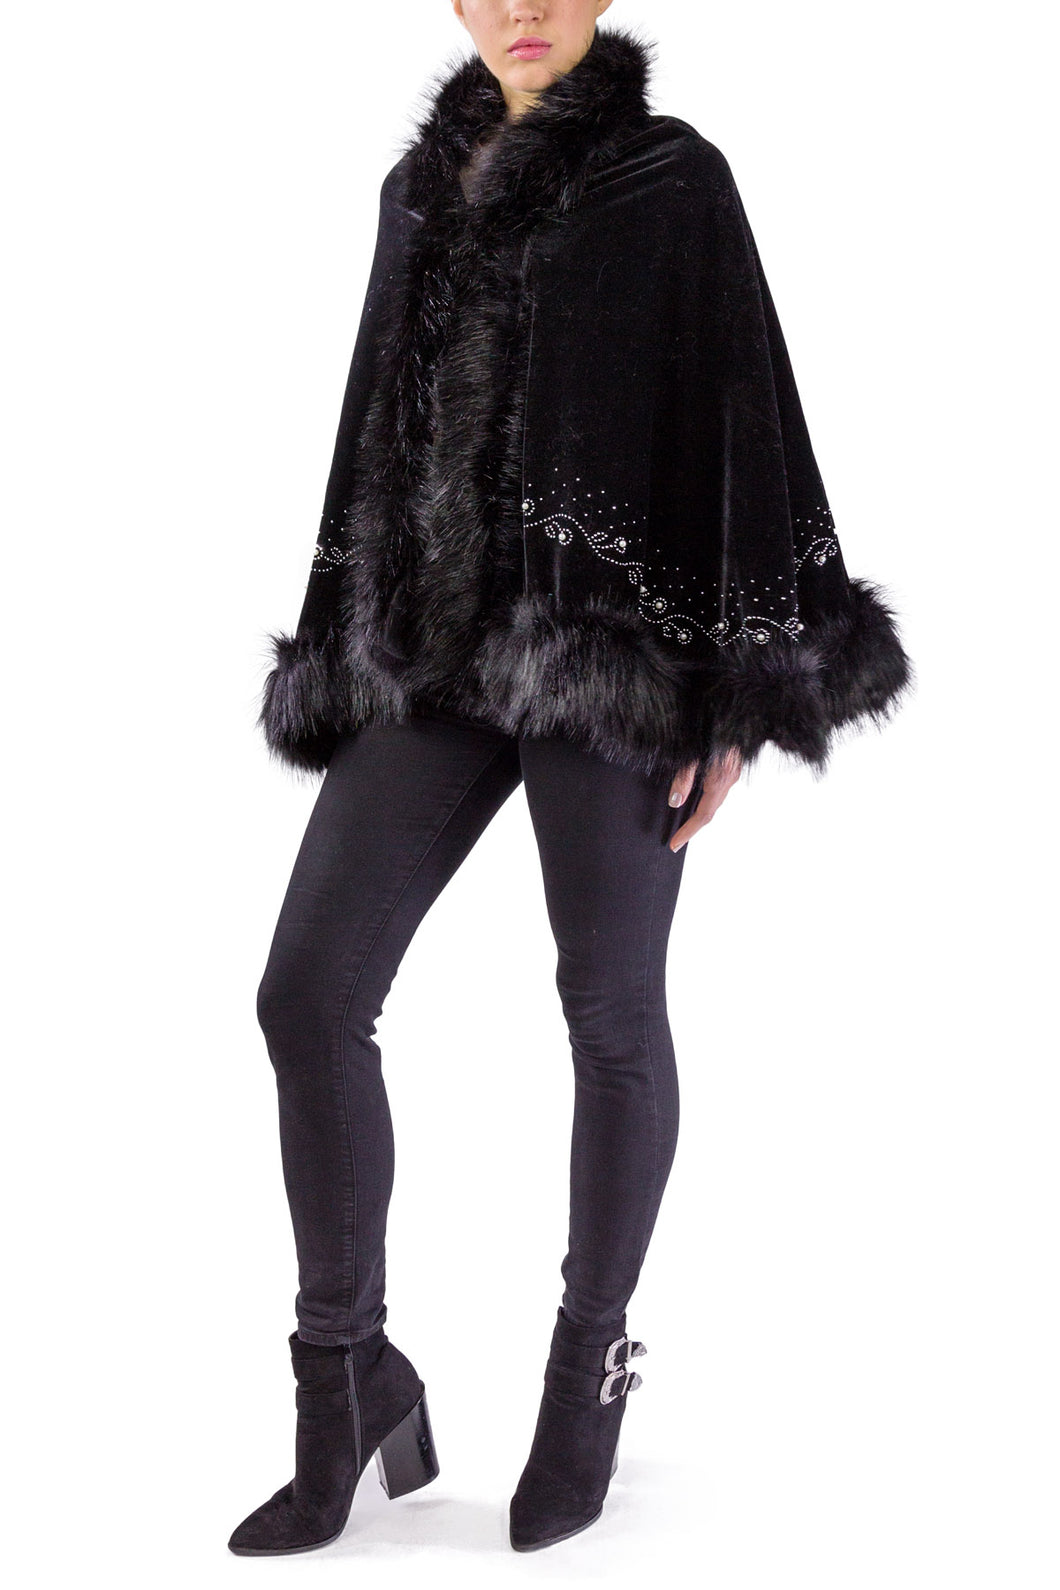 Velvet Faux Fur Shawl with Pearl and Rhinestone Border - Just Jamie